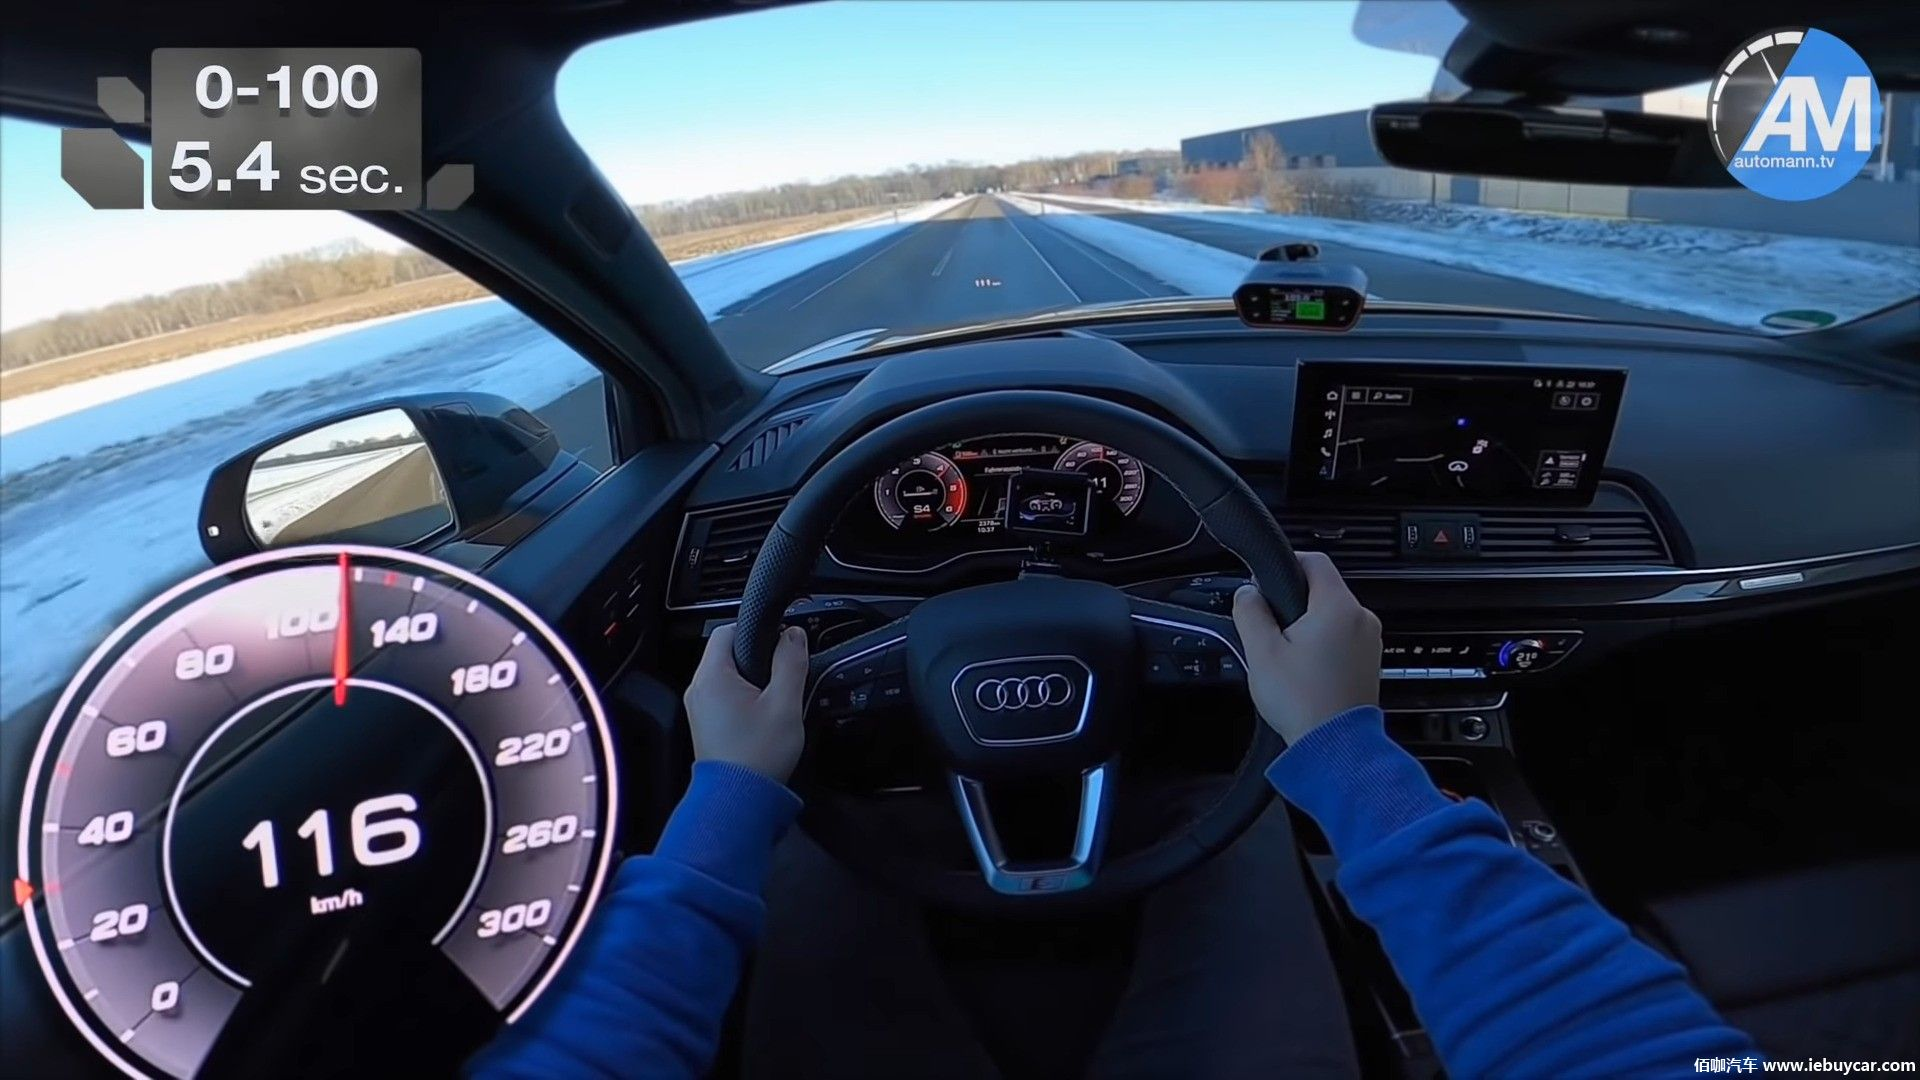 audi-sq5-sportback-shows-decent-tdi-acceleration-in-autobahn-test_4.jpg